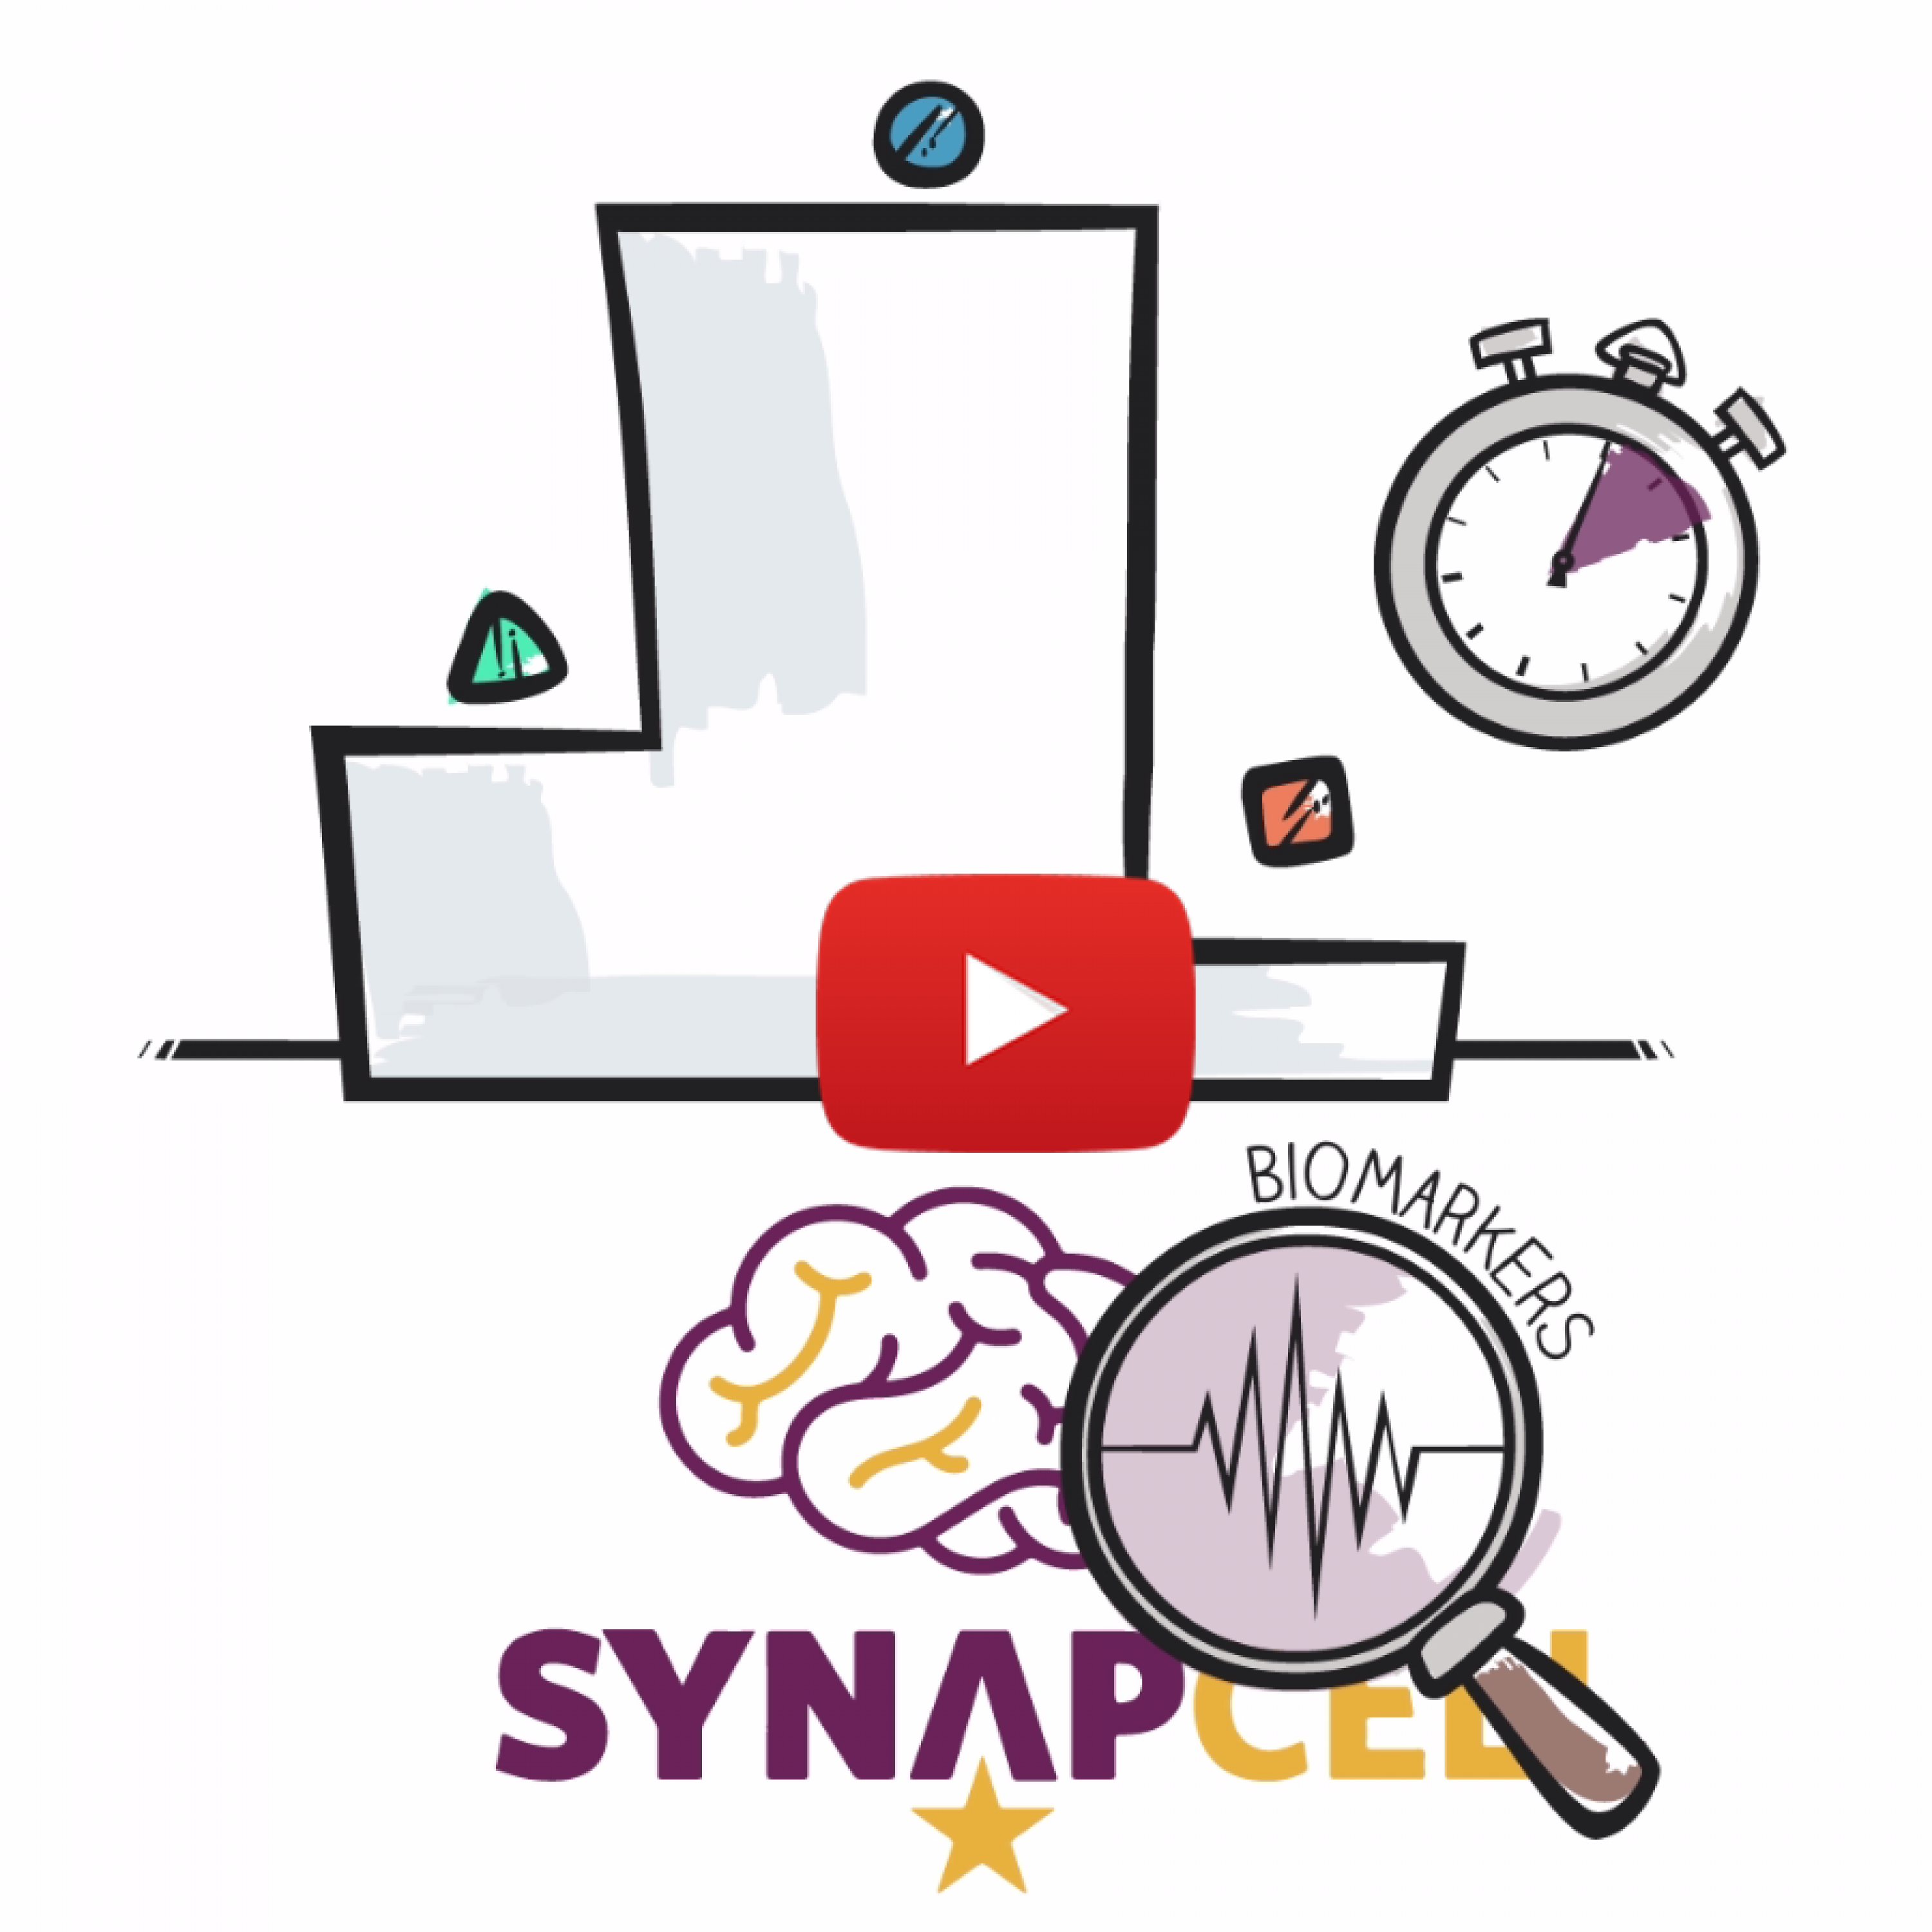 Biomarkers-Youtube-synapcell